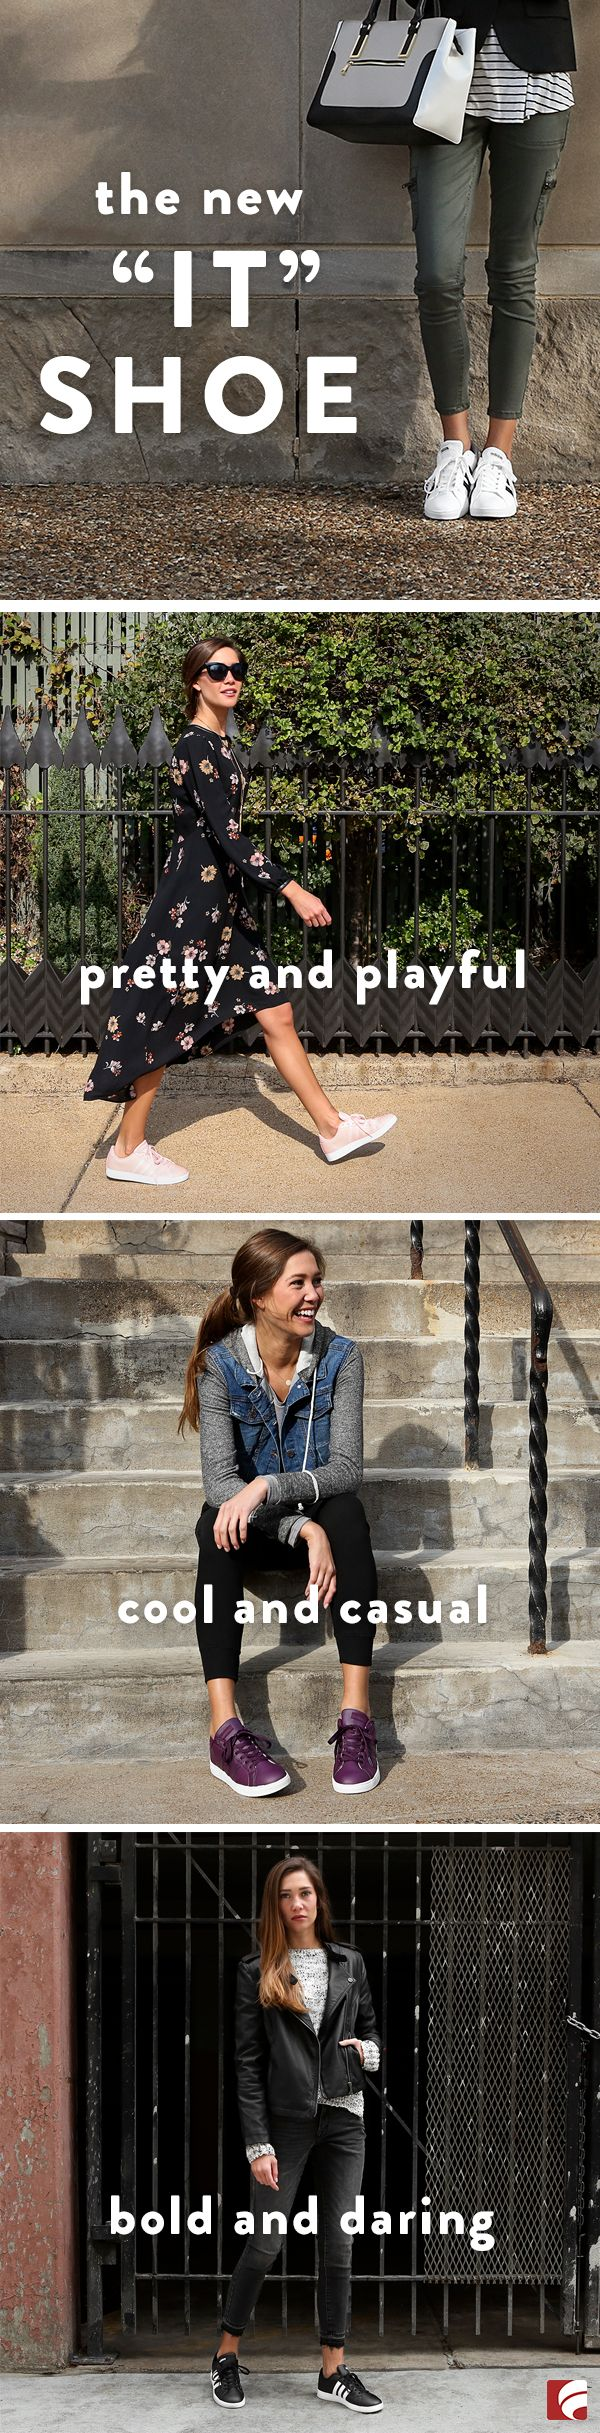 Daring. Cool. Playful. Confident. There's an adidas Baseline for every mood...what will it be today?